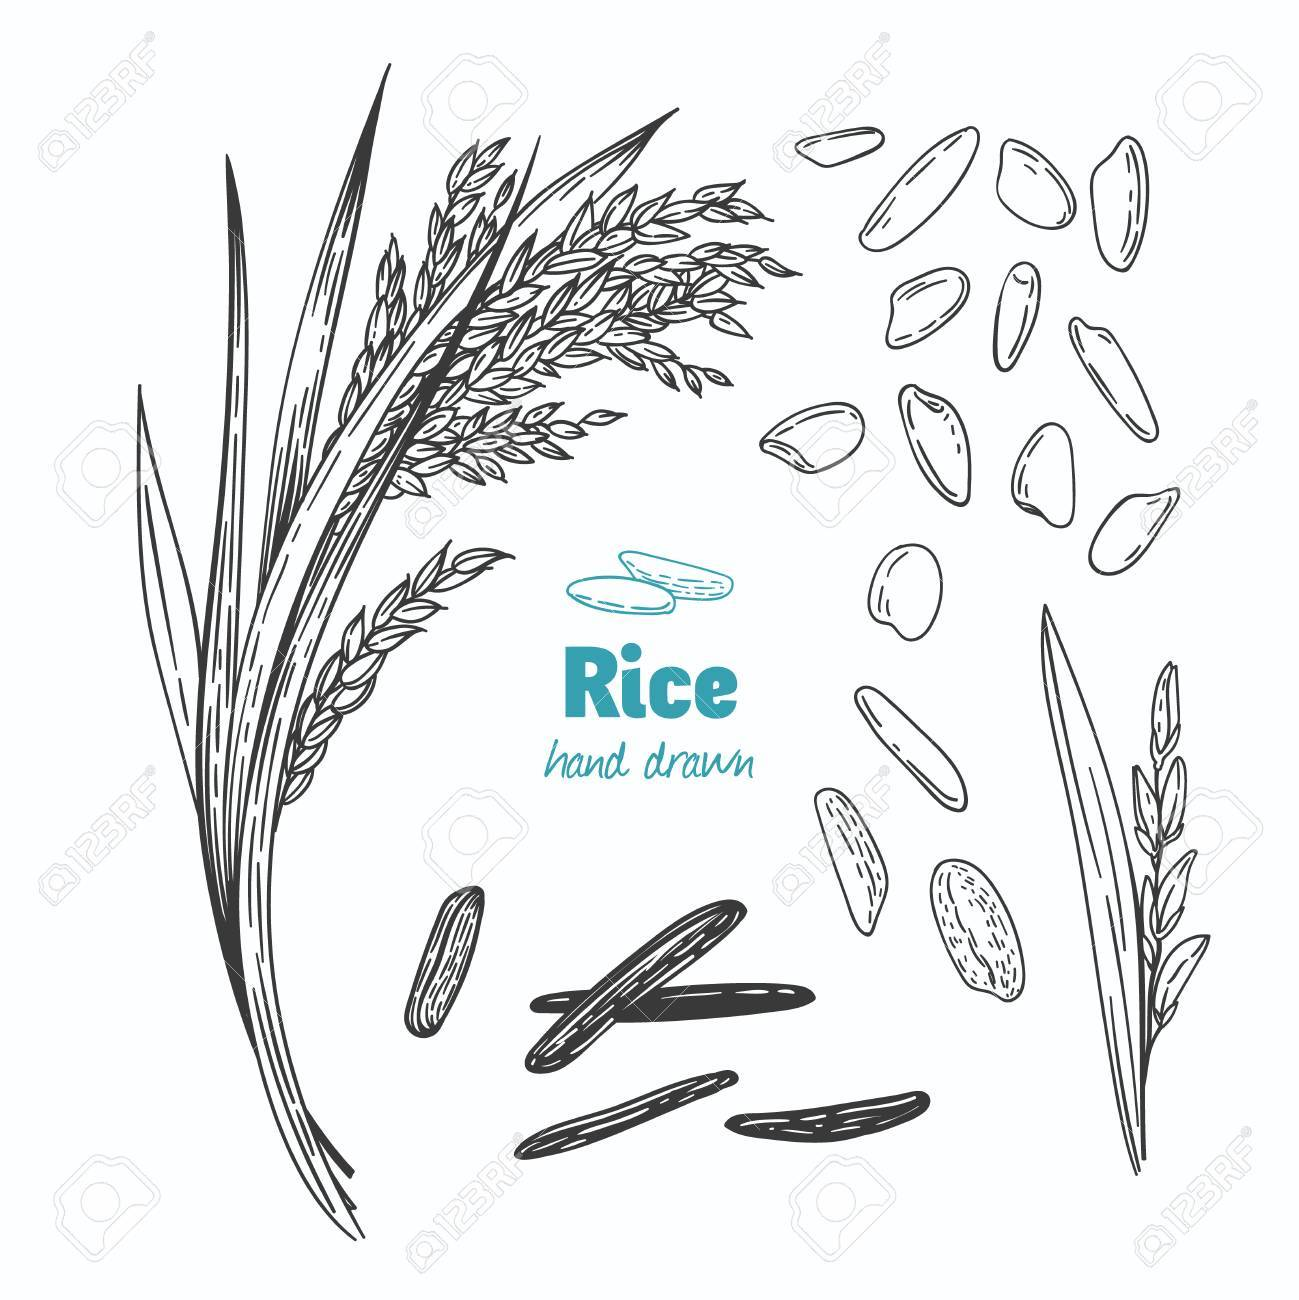 Detailed hand drawn vector black and white illustration of rice seeds and straw - 88355536